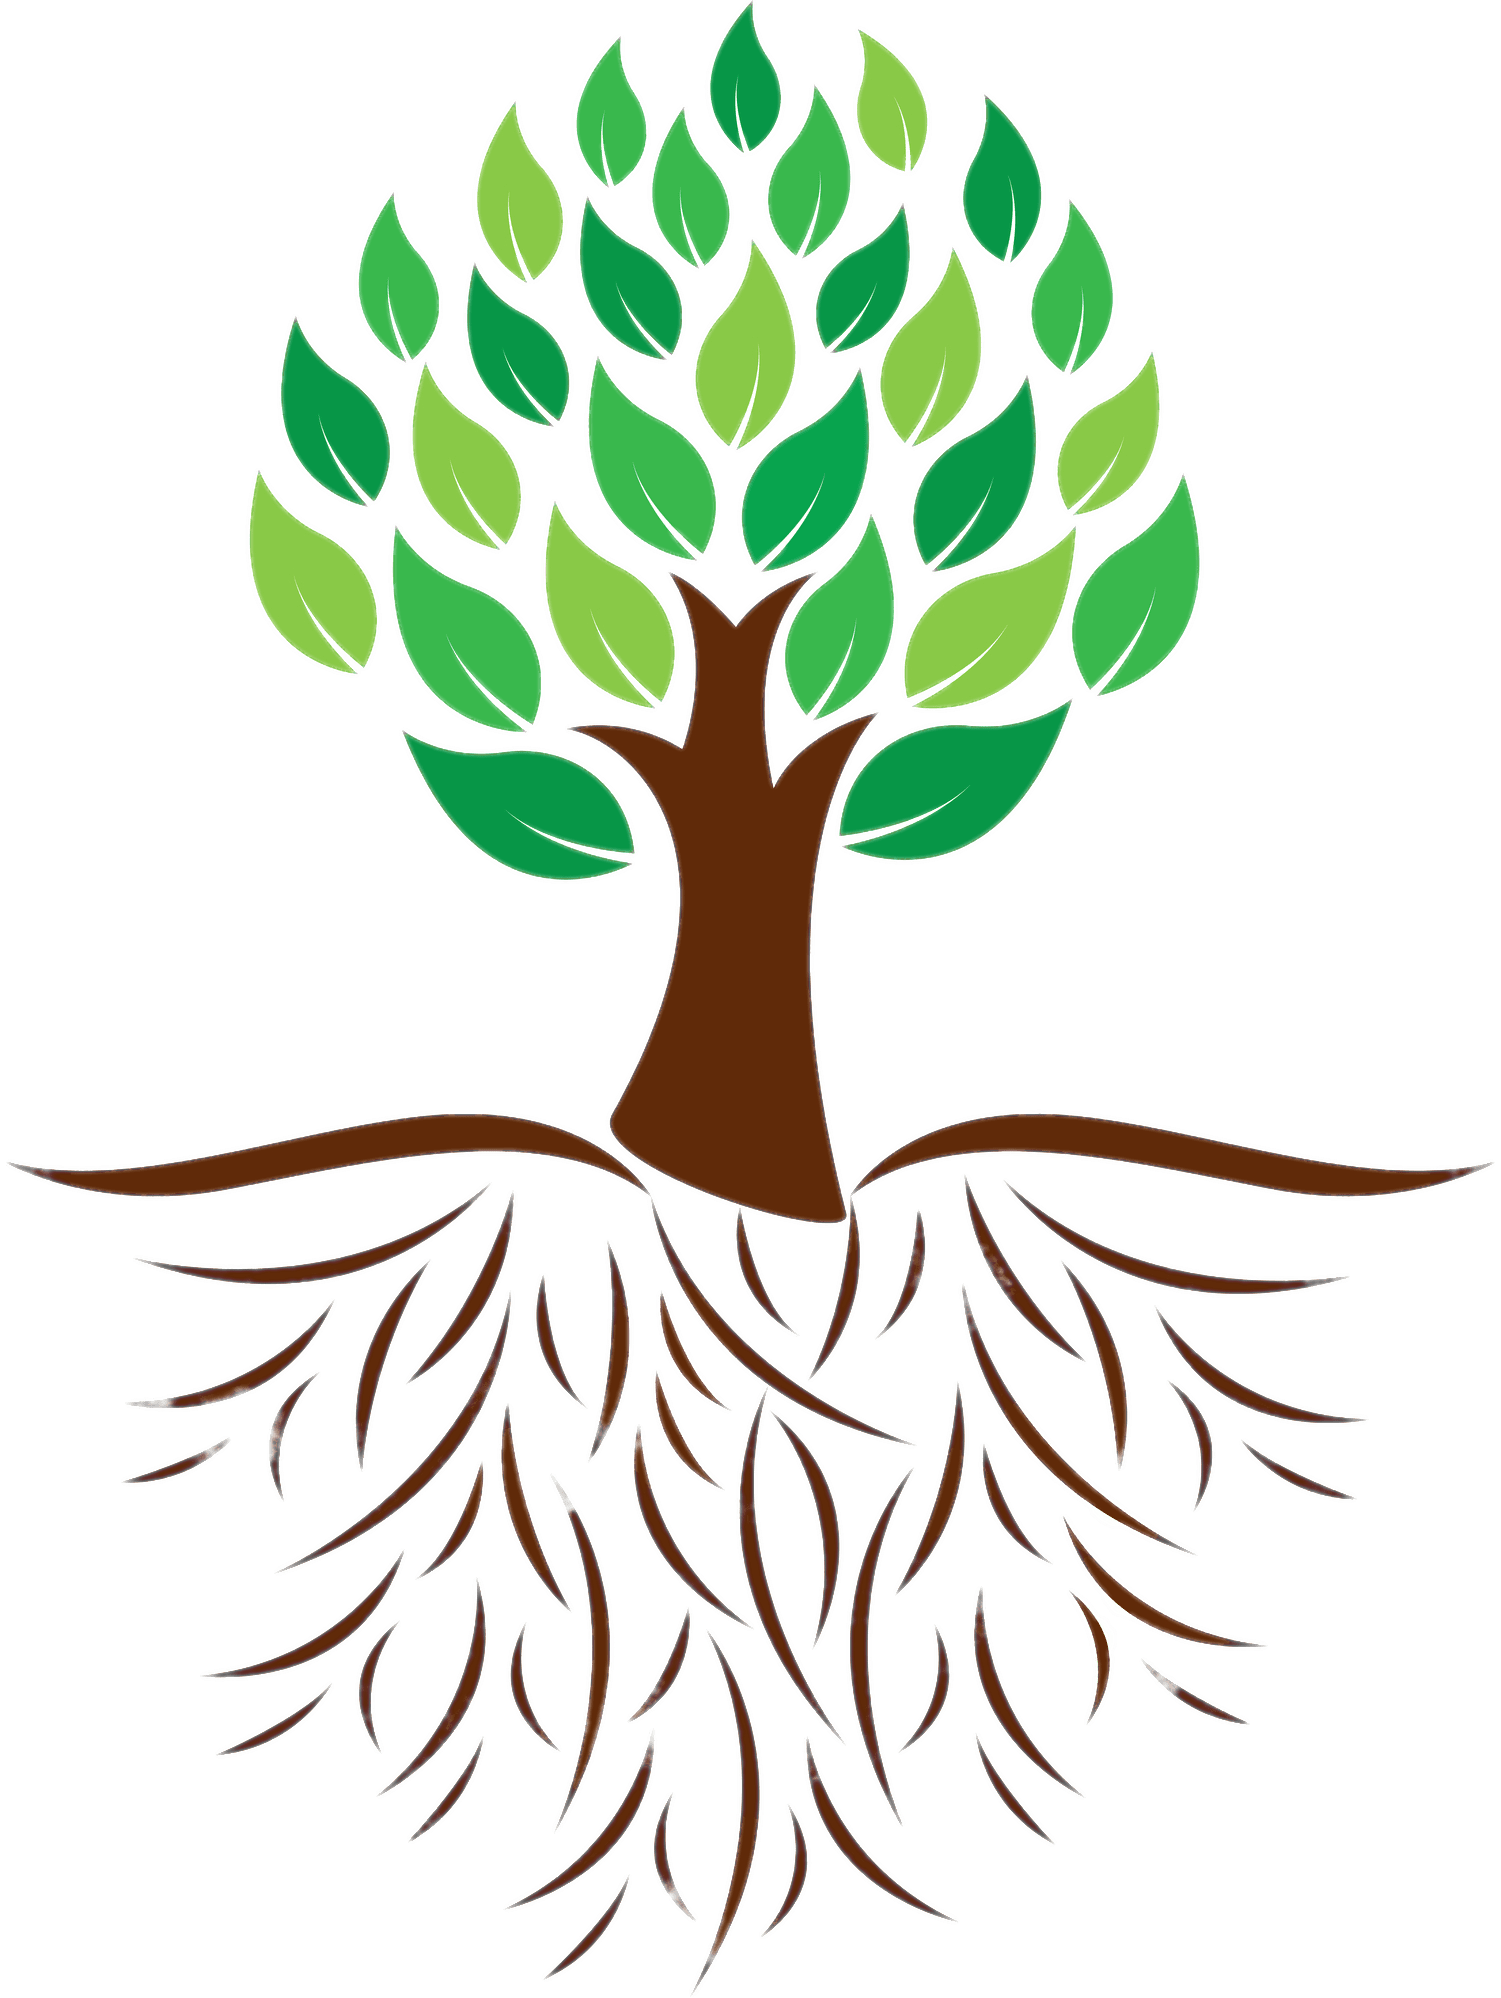 Tree clipart colour. And roots illustration transparent